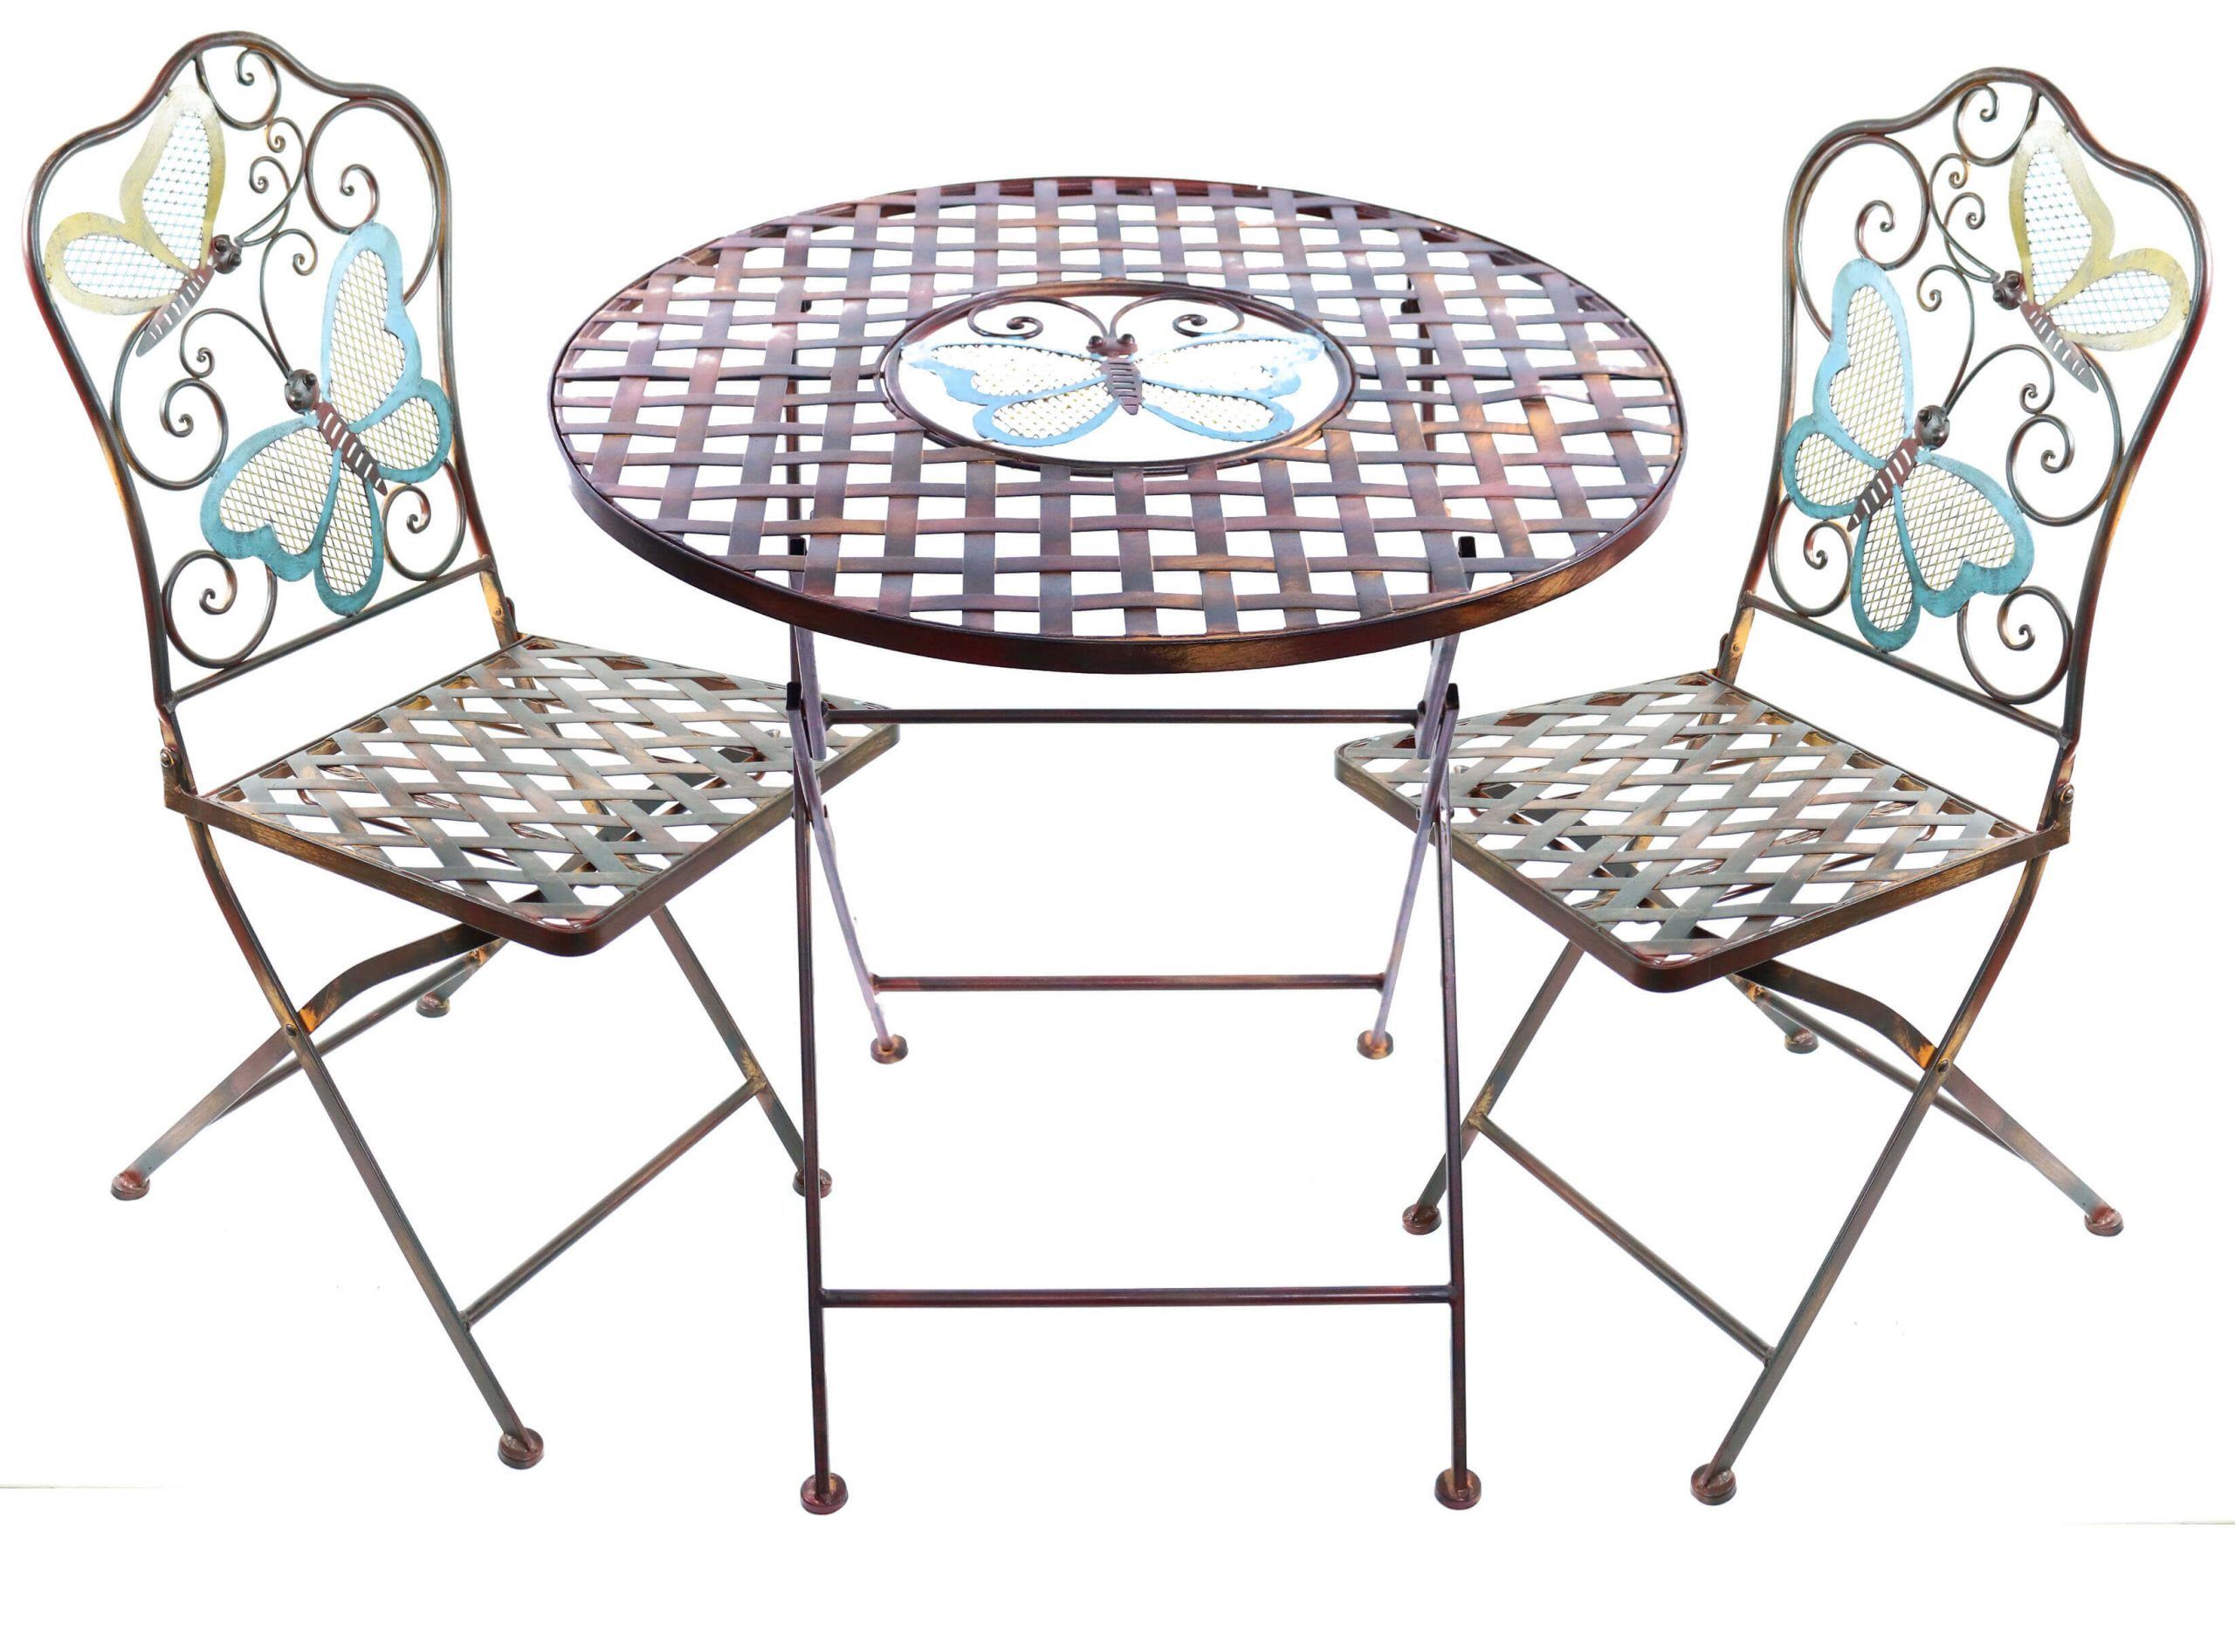 CHARMING BUTTERFLIES ROUND PATIO TABLE AND CHAIRS